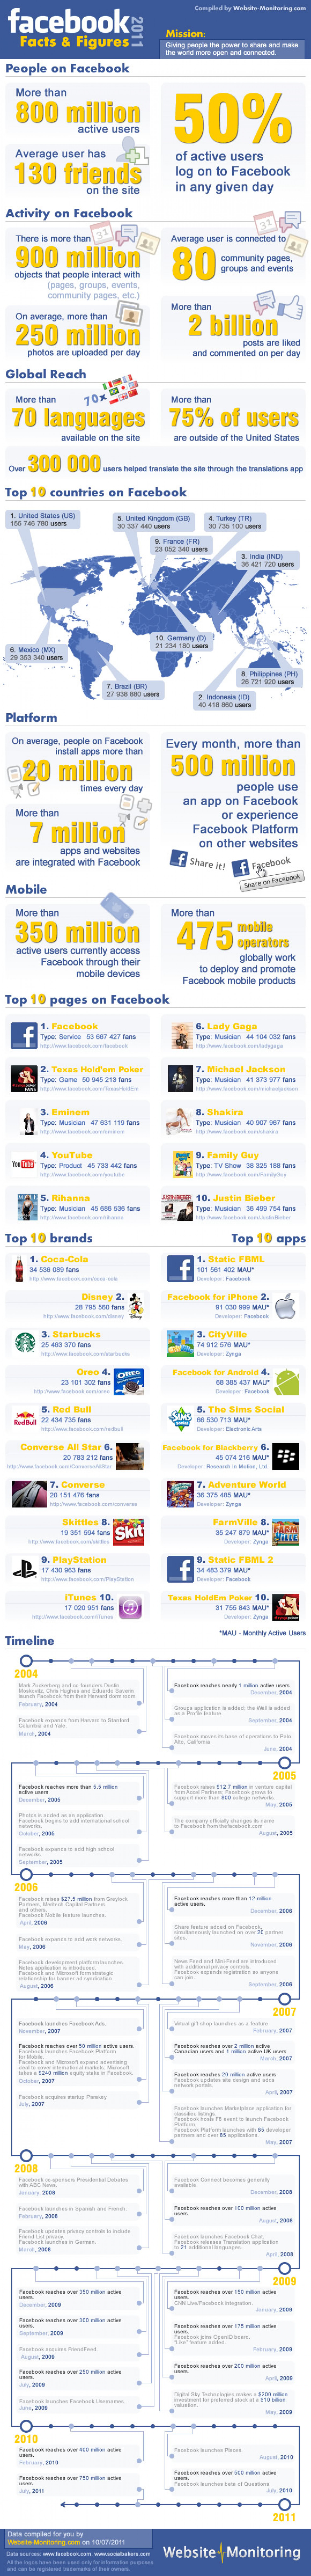 Facebook Facts and Figures 2011 (infographic) Infographic